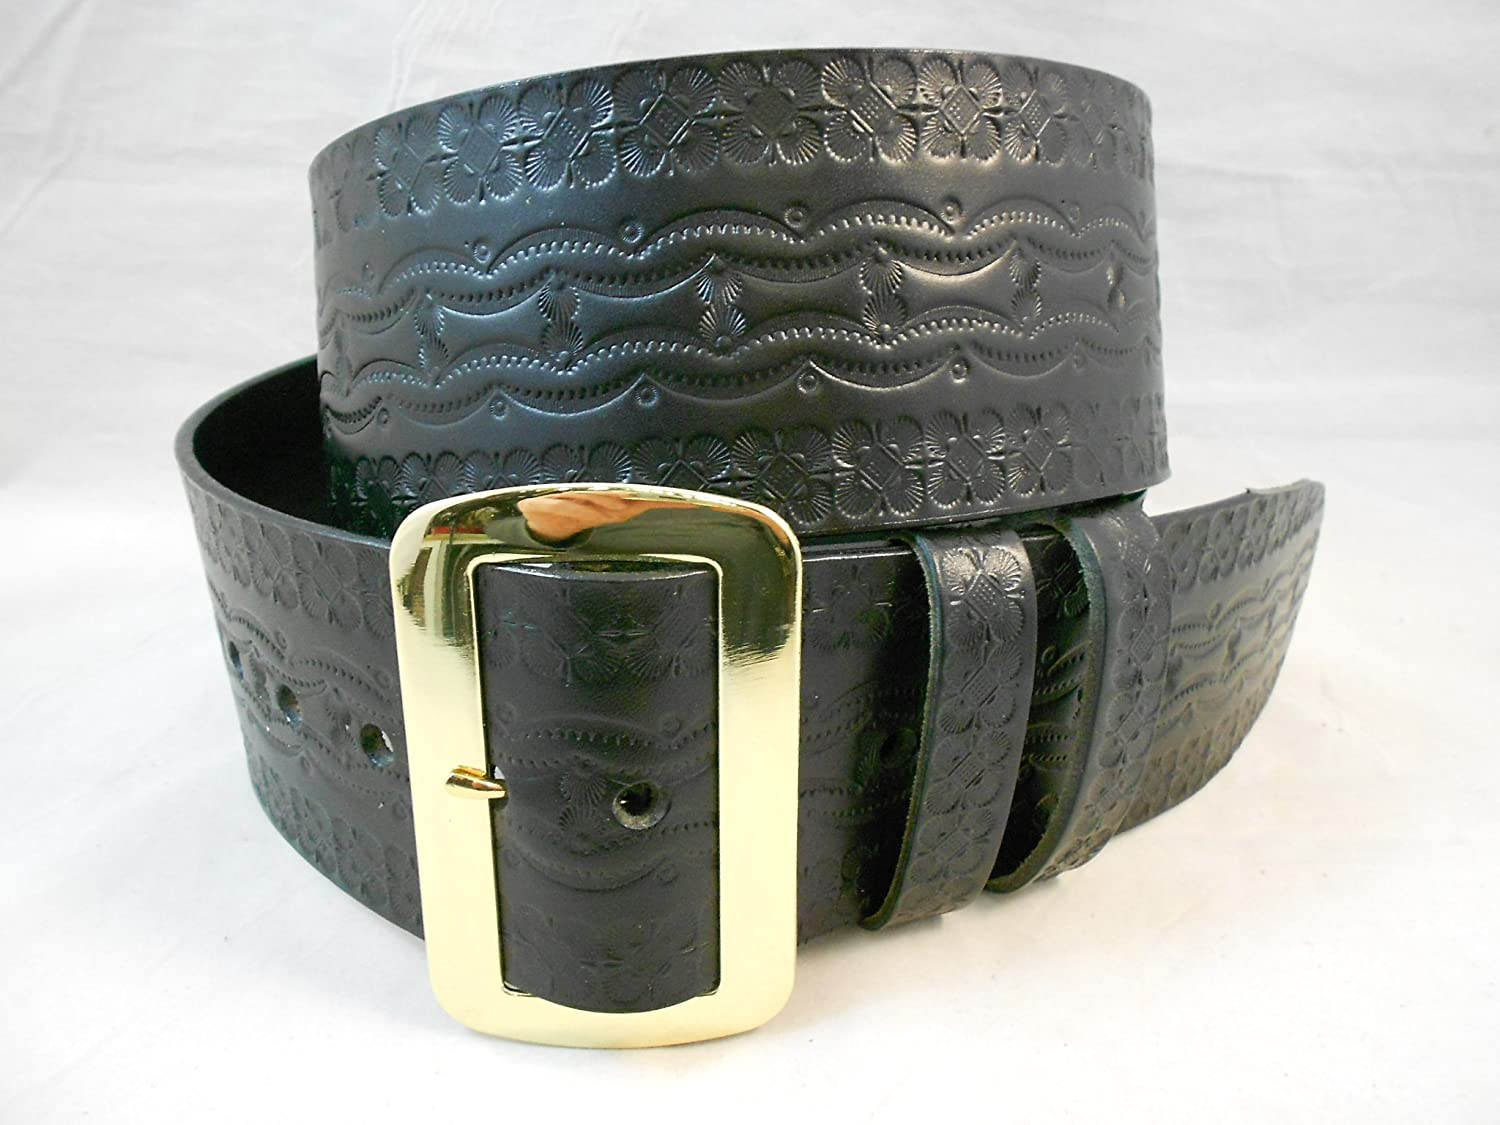 Santa Claus Hand Tooled Solid Leather Belt - DeluxeAdultCostumes.com